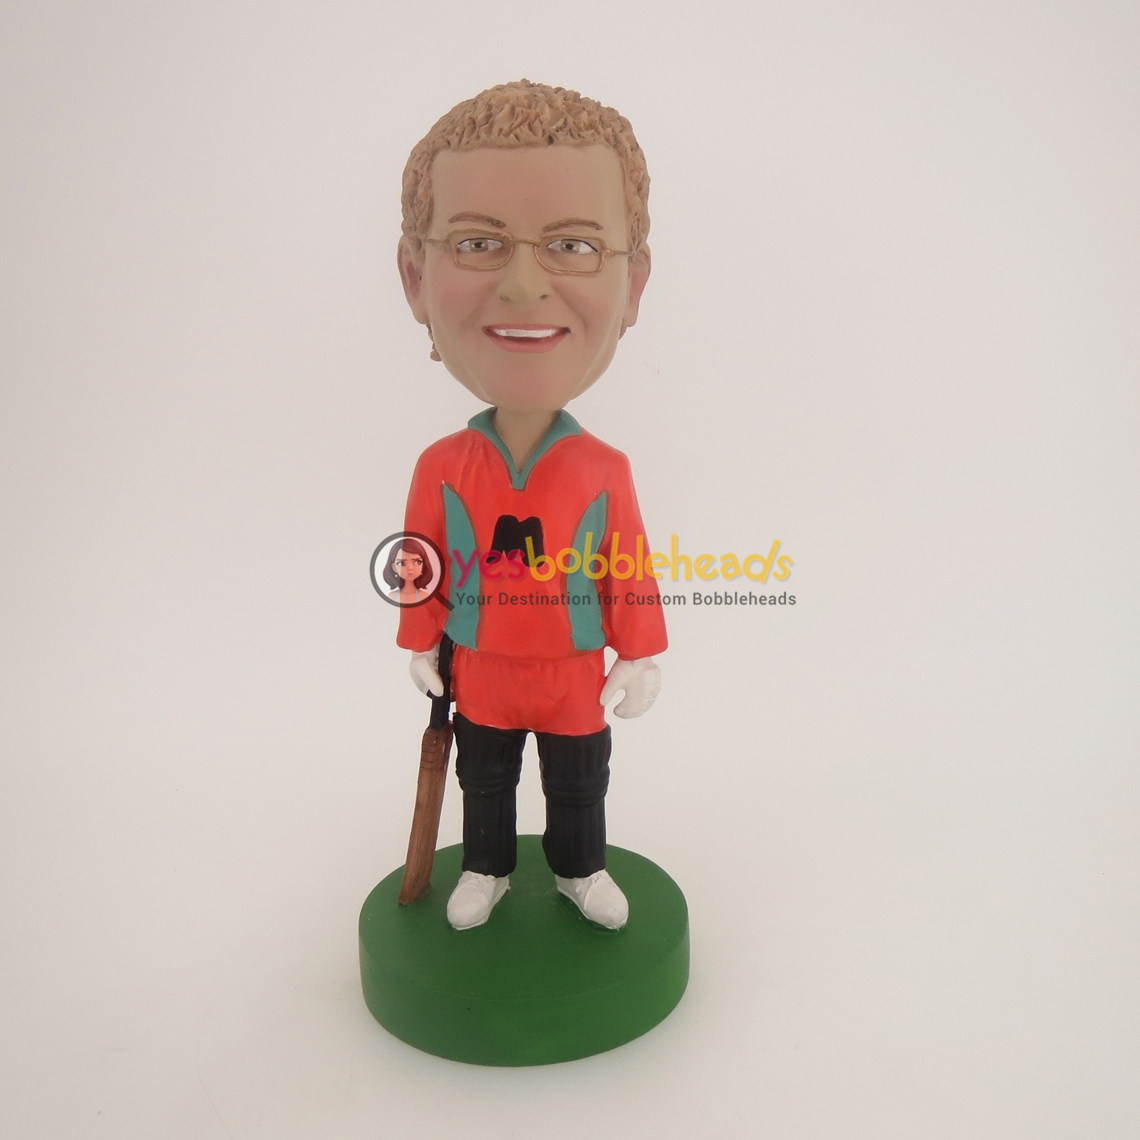 Picture of Custom Bobblehead Doll: Cricketer Player